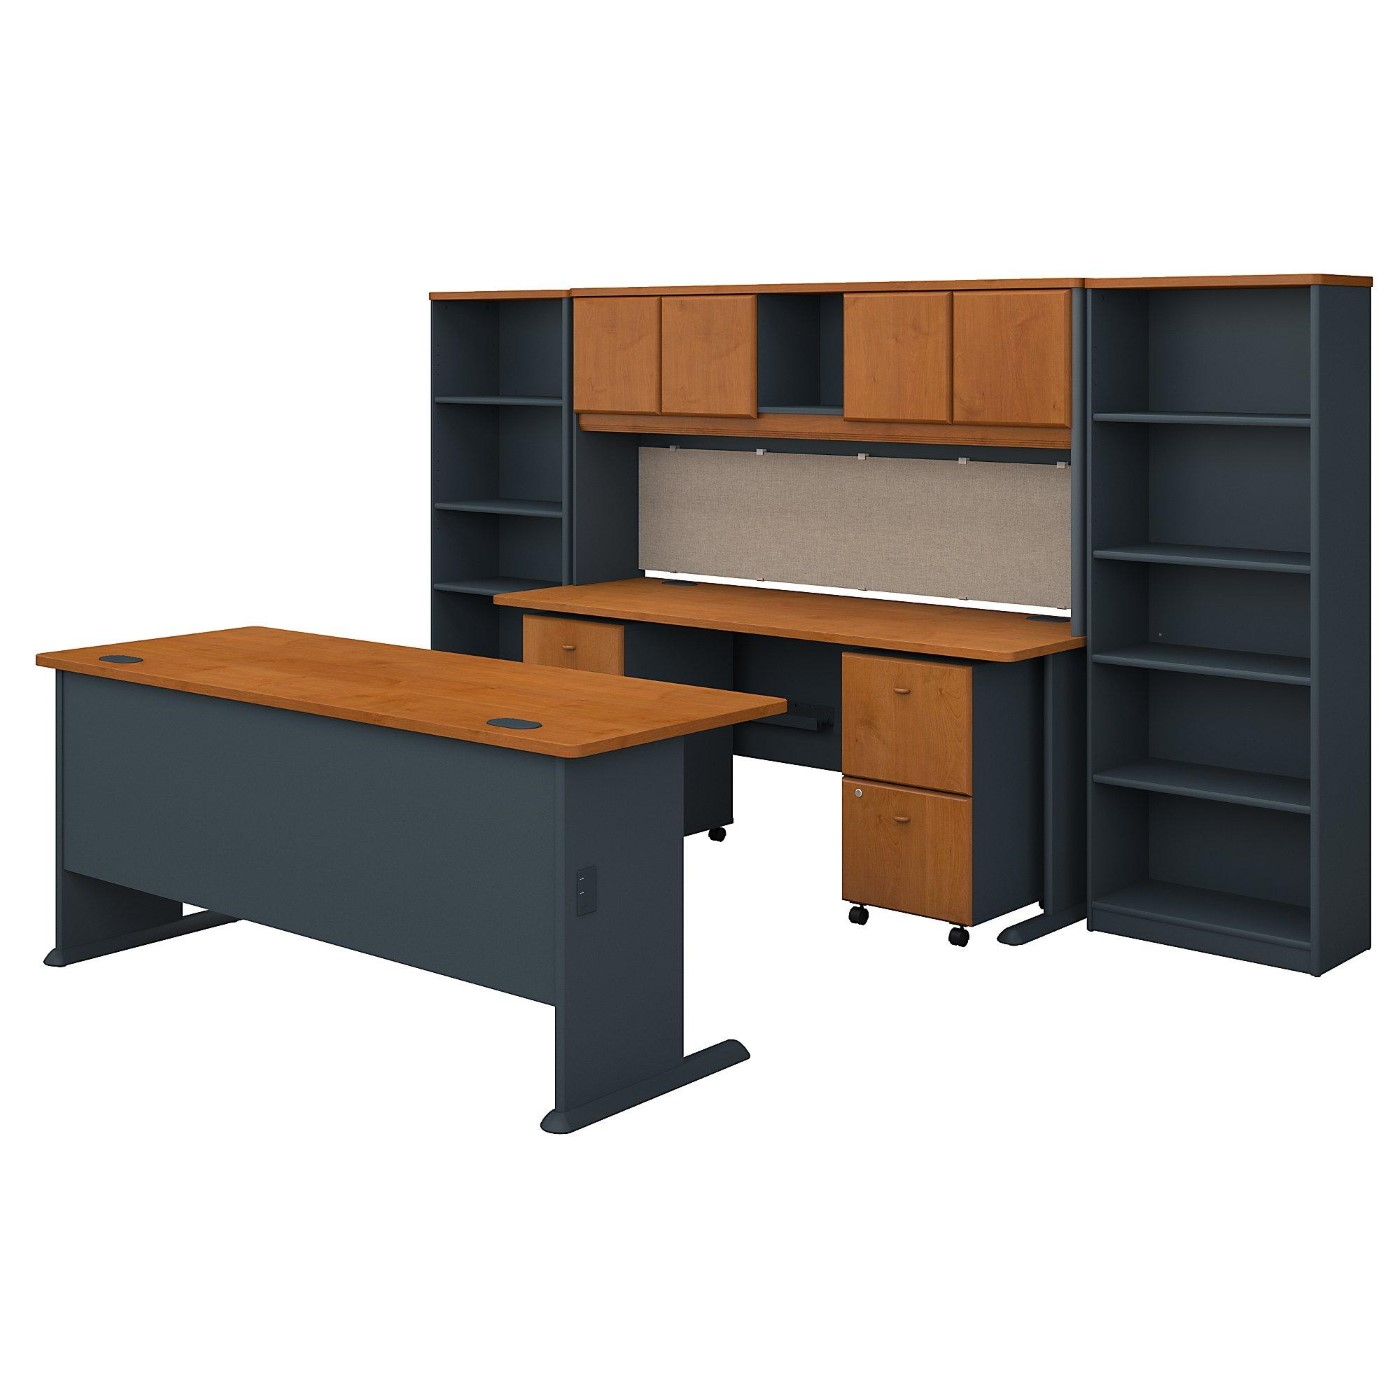 </b></font><b>BUSH BUSINESS FURNITURE SERIES A 72W DESK WITH CREDENZA, HUTCH, BOOKCASES AND STORAGE. FREE SHIPPING</b></font>  VIDEO BELOW. </b></font></b>